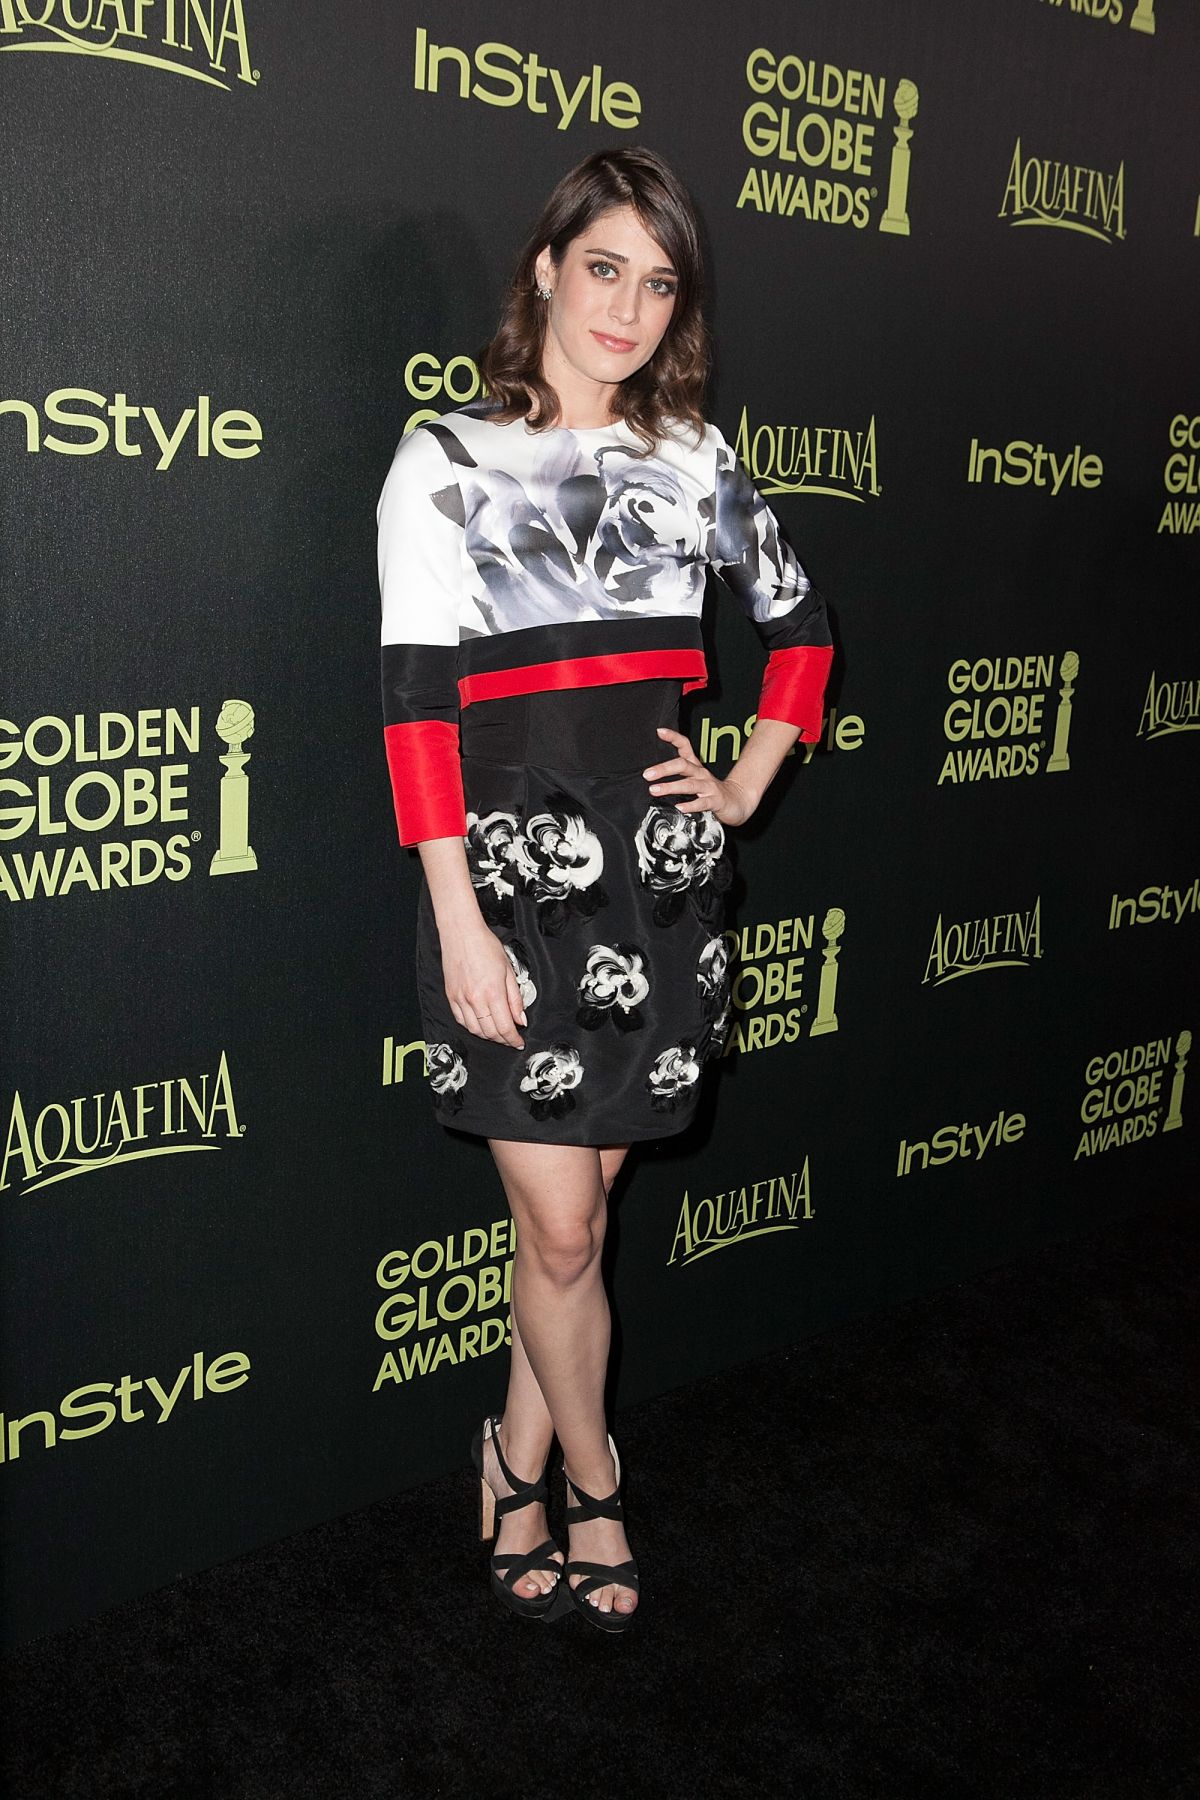 lizzy-caplan-appear-at-hfpa-instyle-celebrate-the-2015-golden-globe-award-season-in-west-hollywood_7